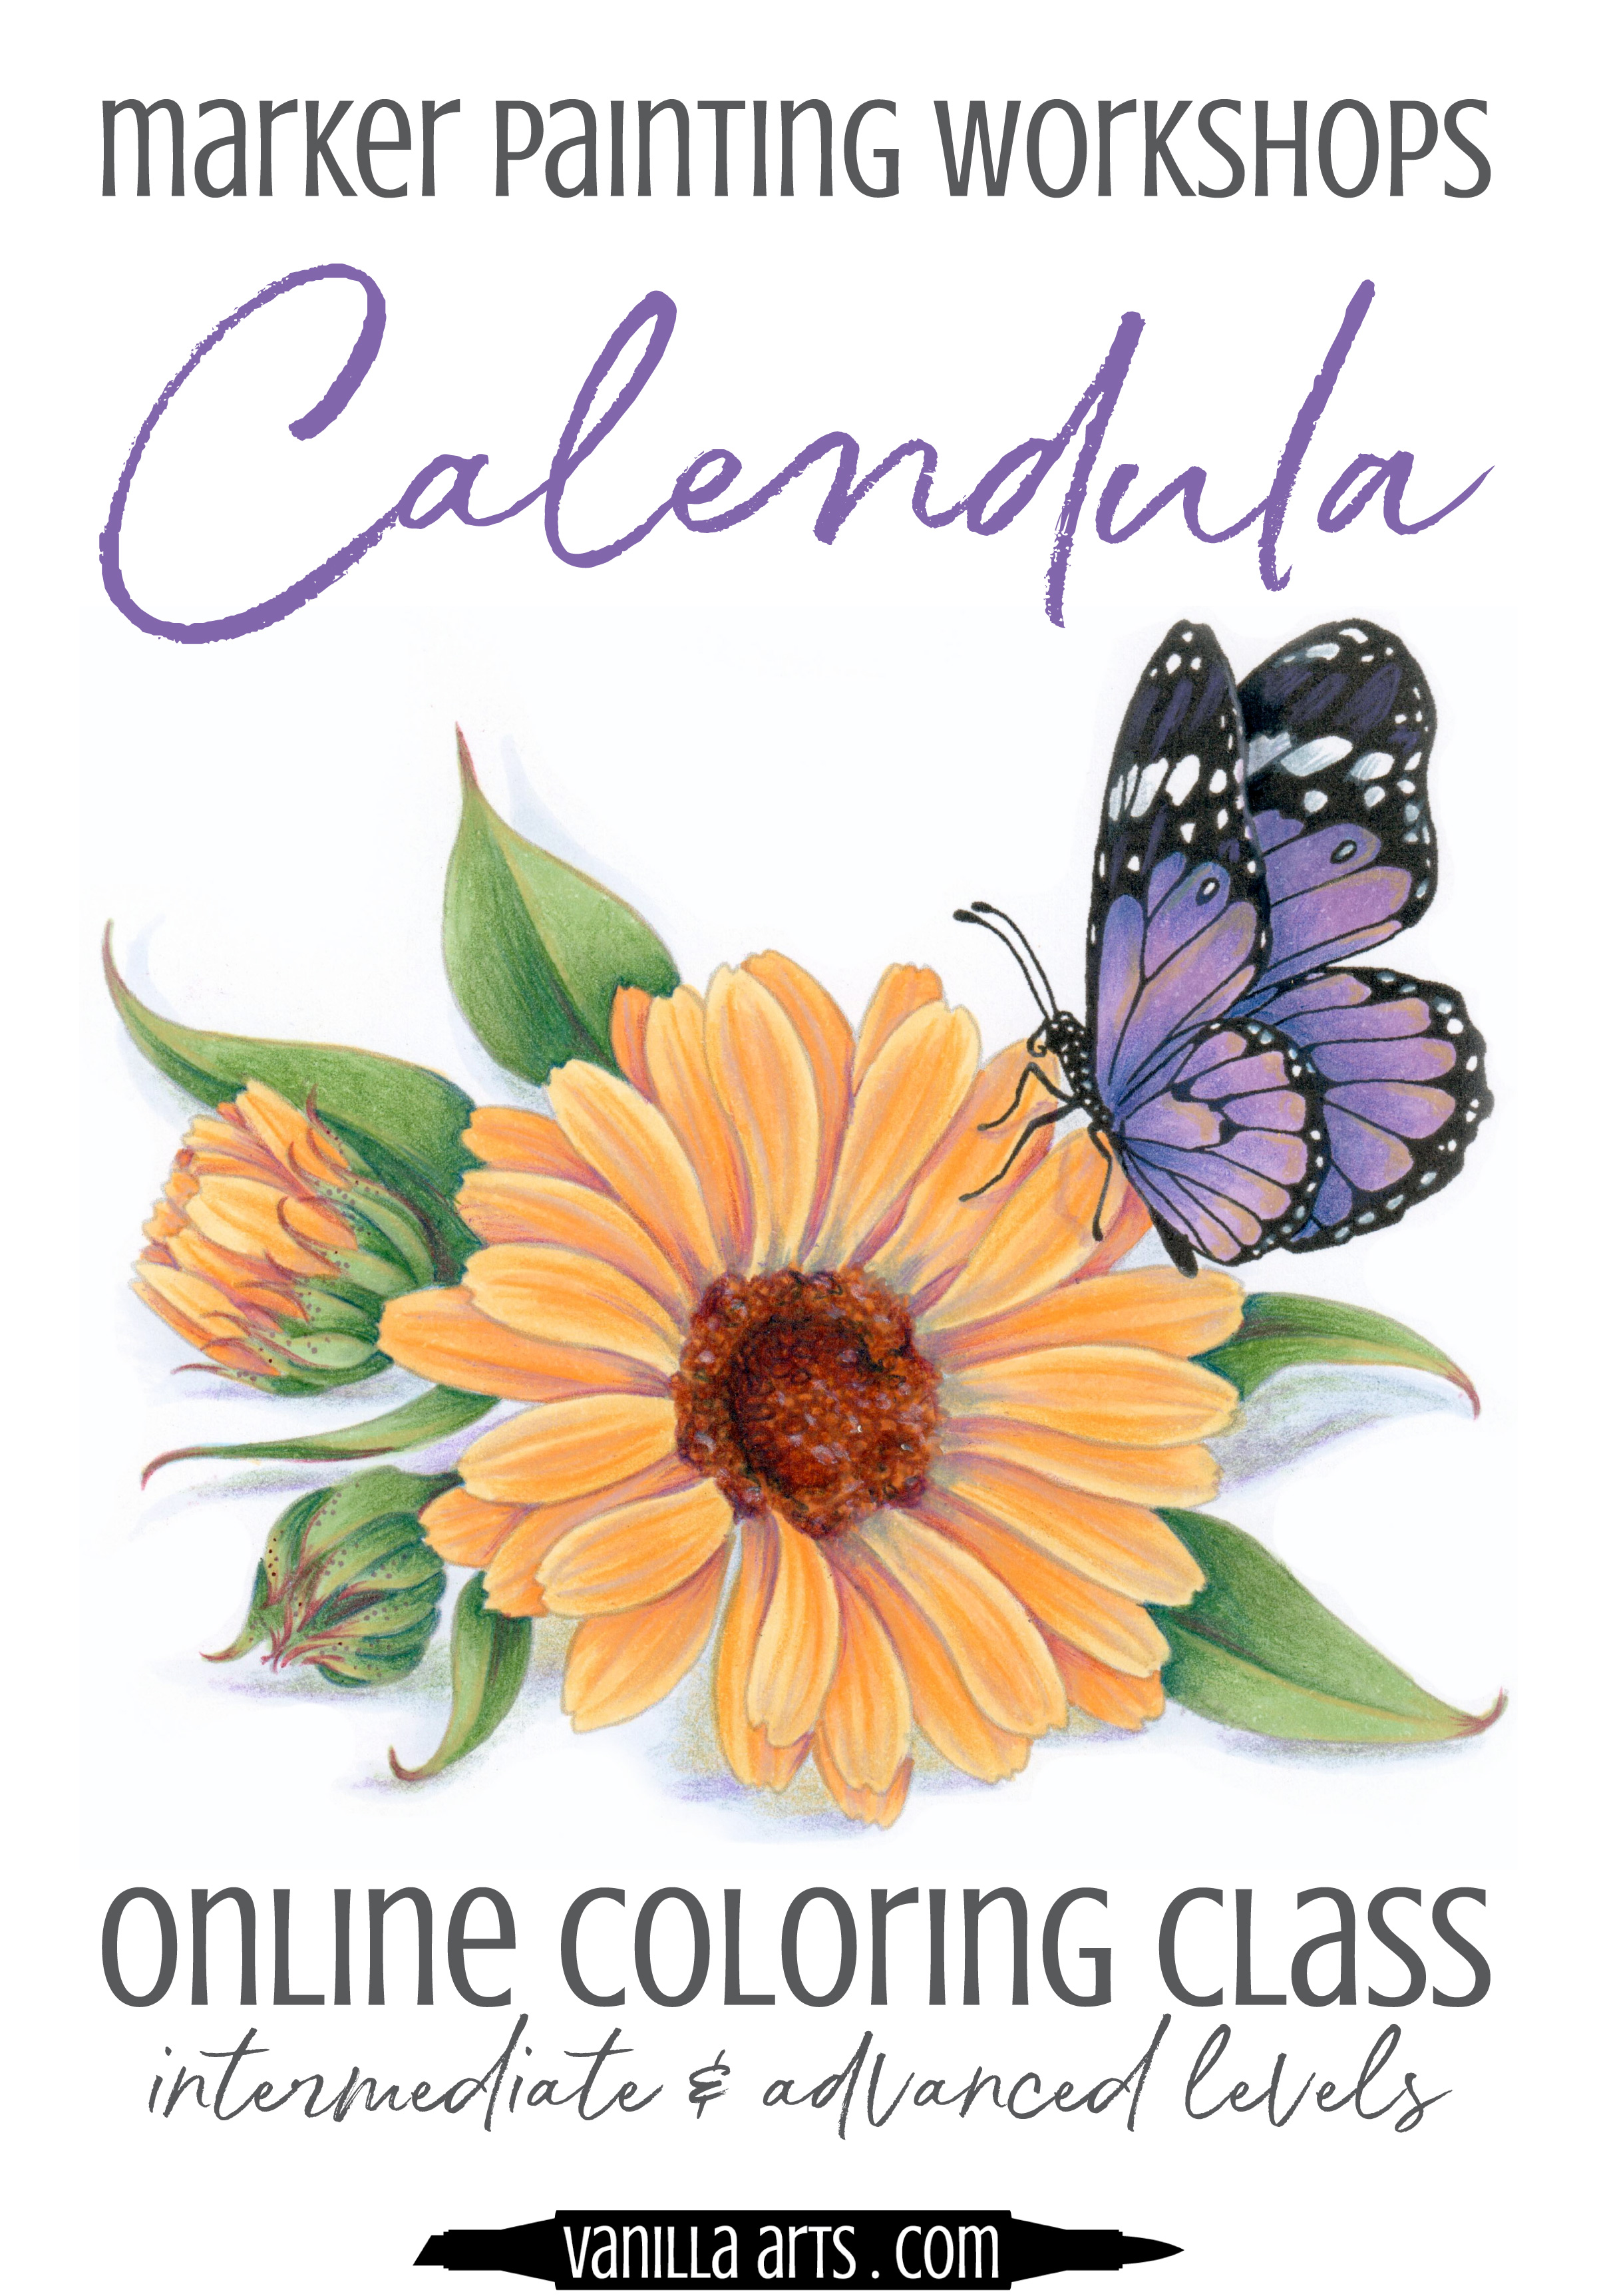 Marker Painting Workshop classes offer artistic challenges for intermediate to advanced colorers. Learn how to overpaint for more realistic depth and shade on yellow flowers. | MarkerPainting.com | #copicmarker #coloredpencil #coloring #howtocolor